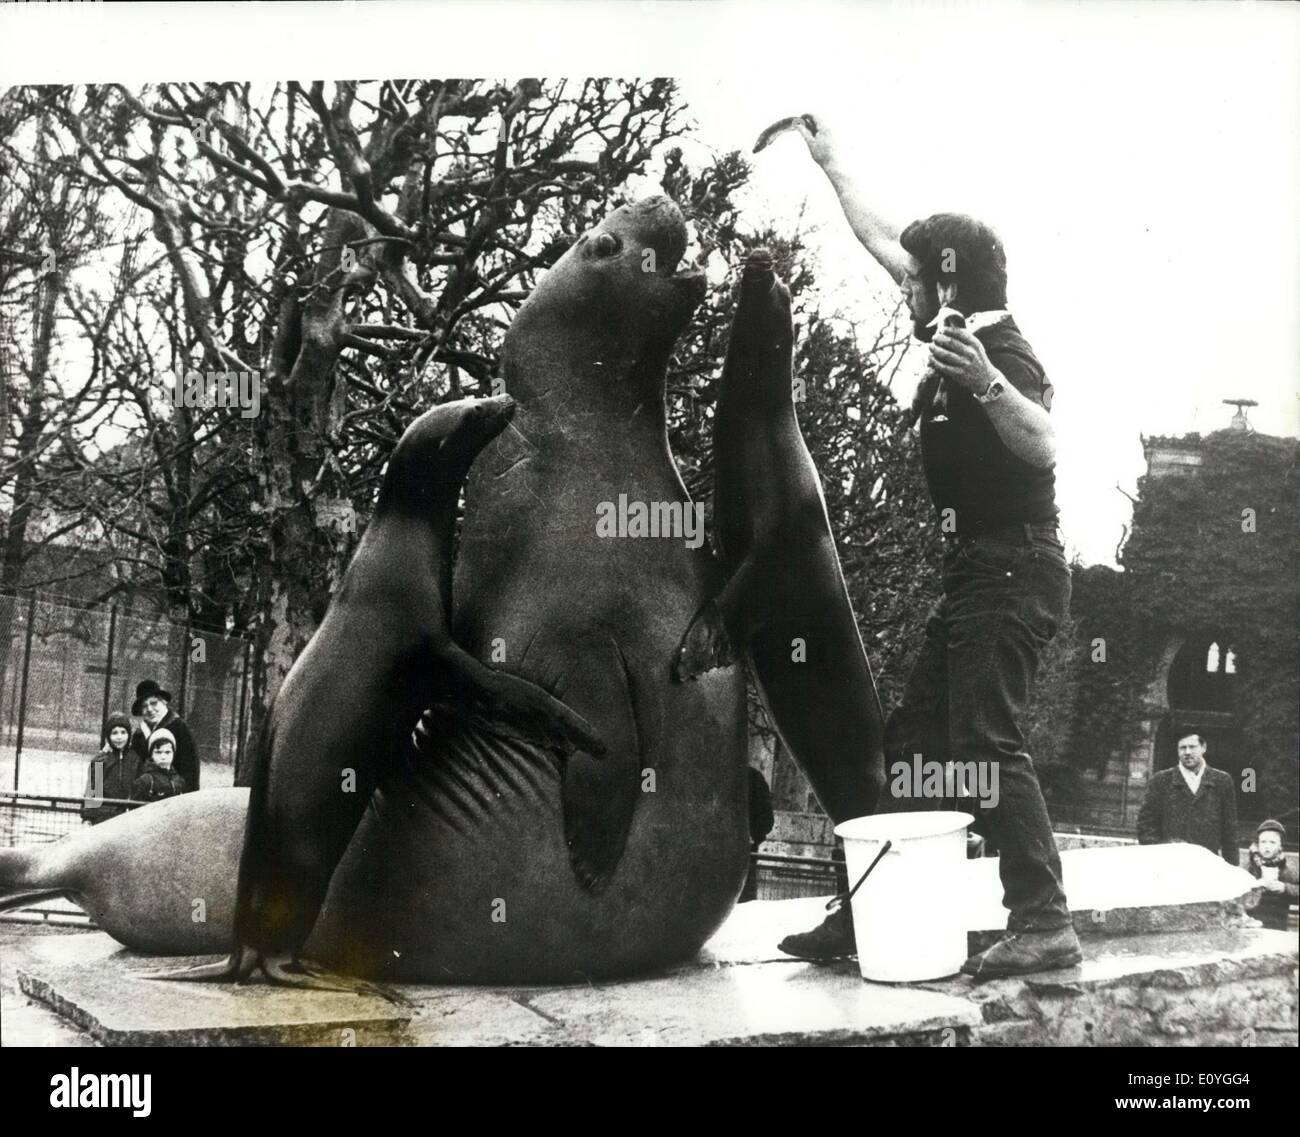 Apr. 13, 1970 - Feeding Time Tableau: Samy, the sea elephant and two sealions make this statue - like tableau, during feeding time at the Stuttgart zoo ''Wilhelma' - Stock Image